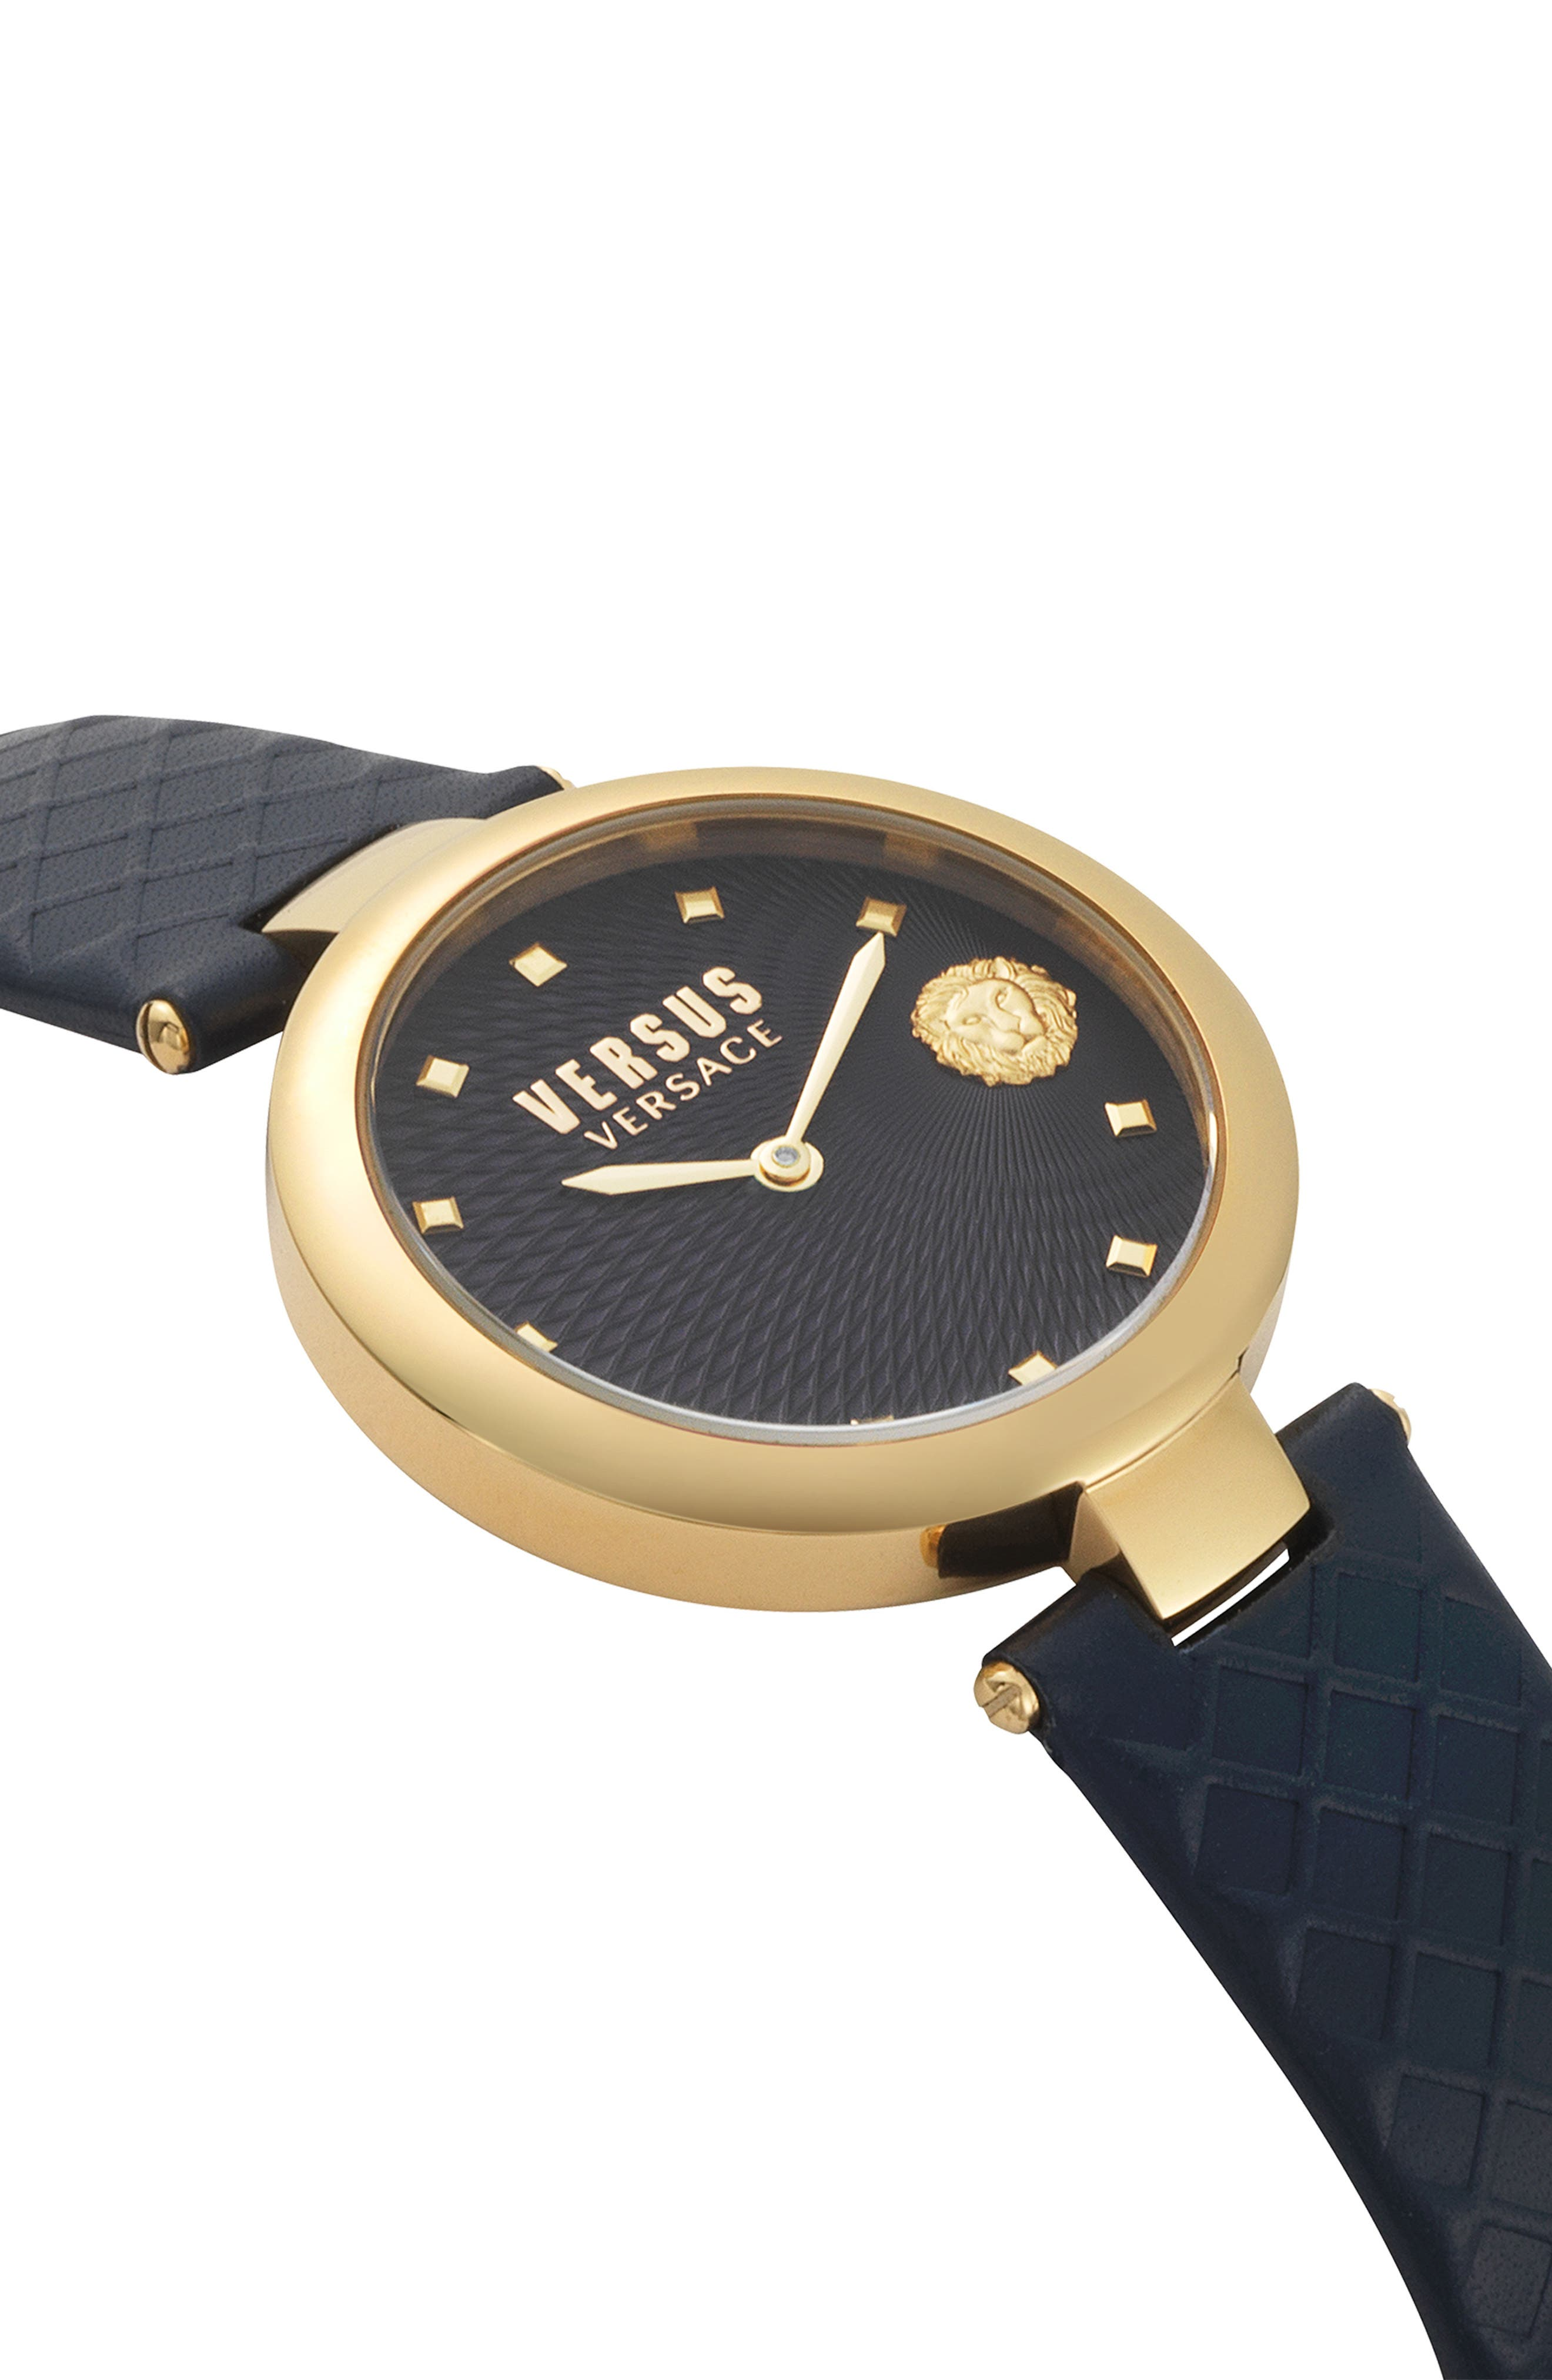 VERSUS VERSACE, Buffle Bay Leather Strap Watch, 36mm, Alternate thumbnail 3, color, BLUE/ GOLD